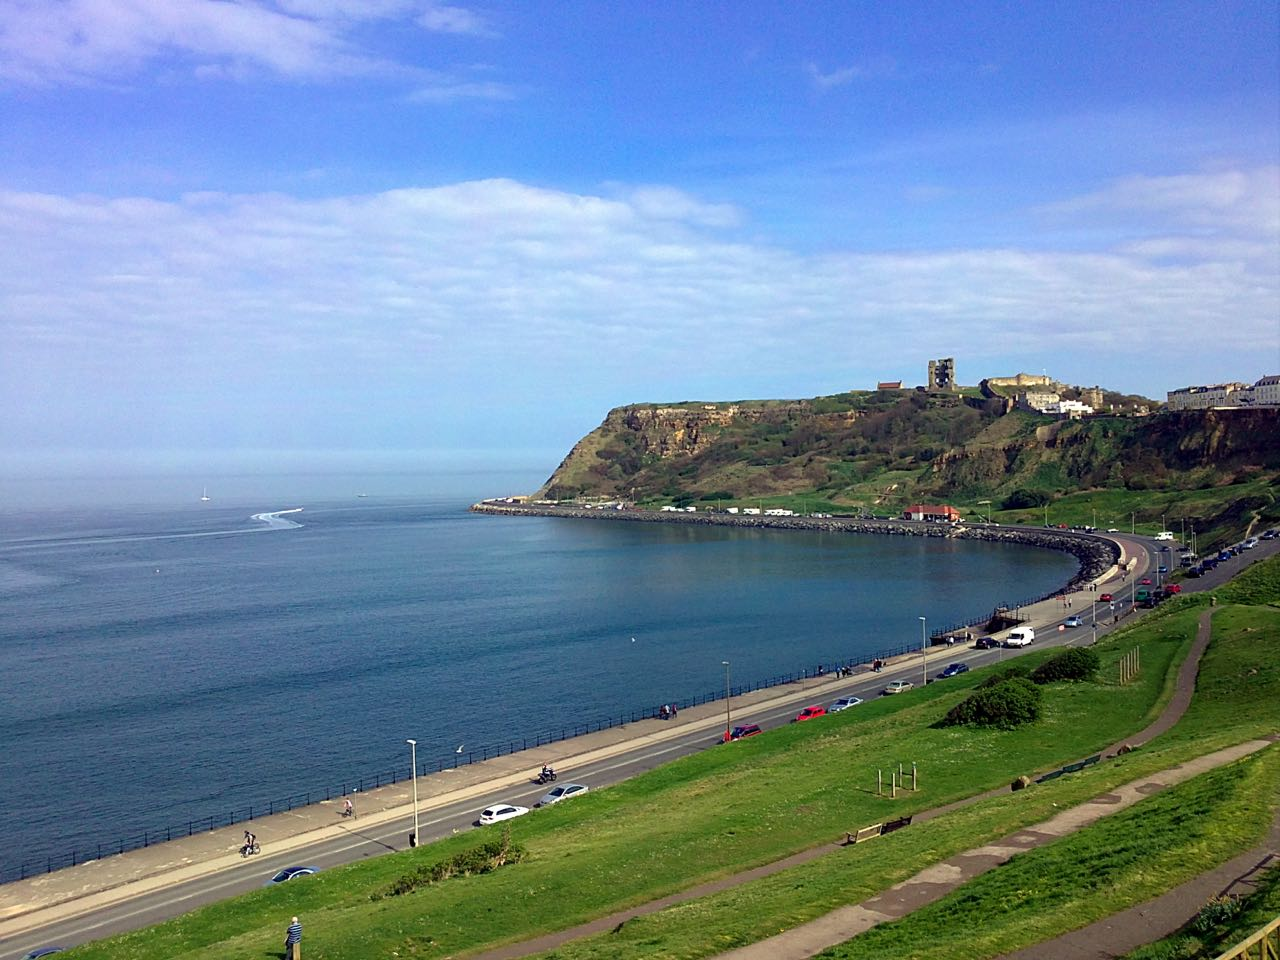 Coastline in Scarborough, UK. April 2011, Sony Ericsson Vivaz U5i